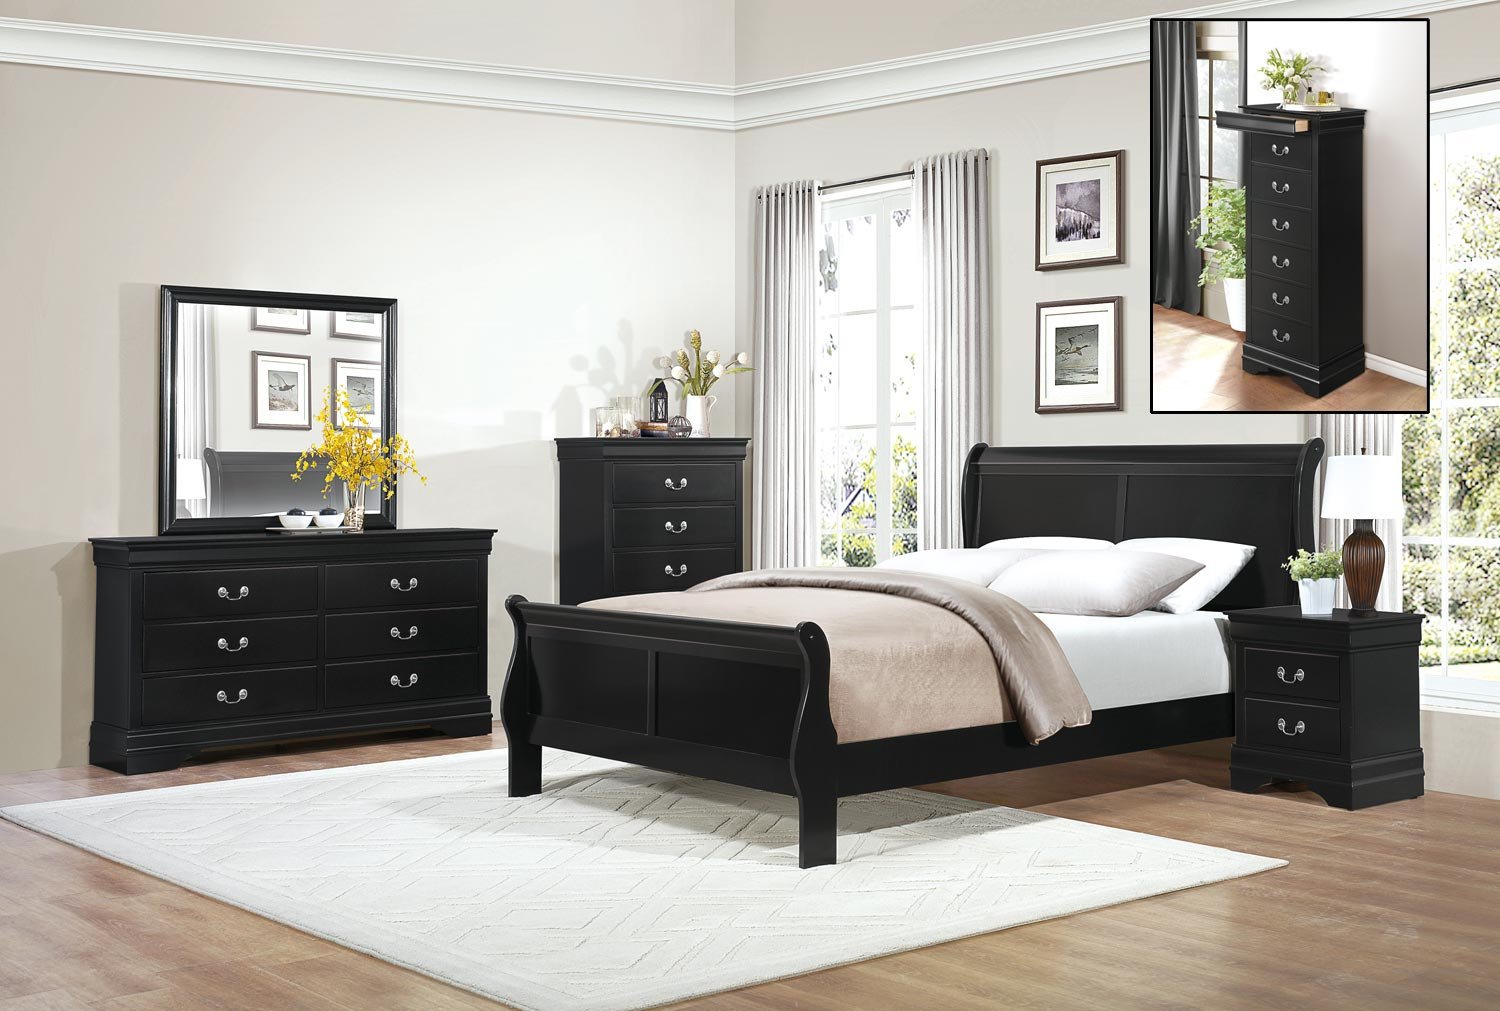 Homelegance Mayville Bedroom Set Black 2147BK BEDROOM SET